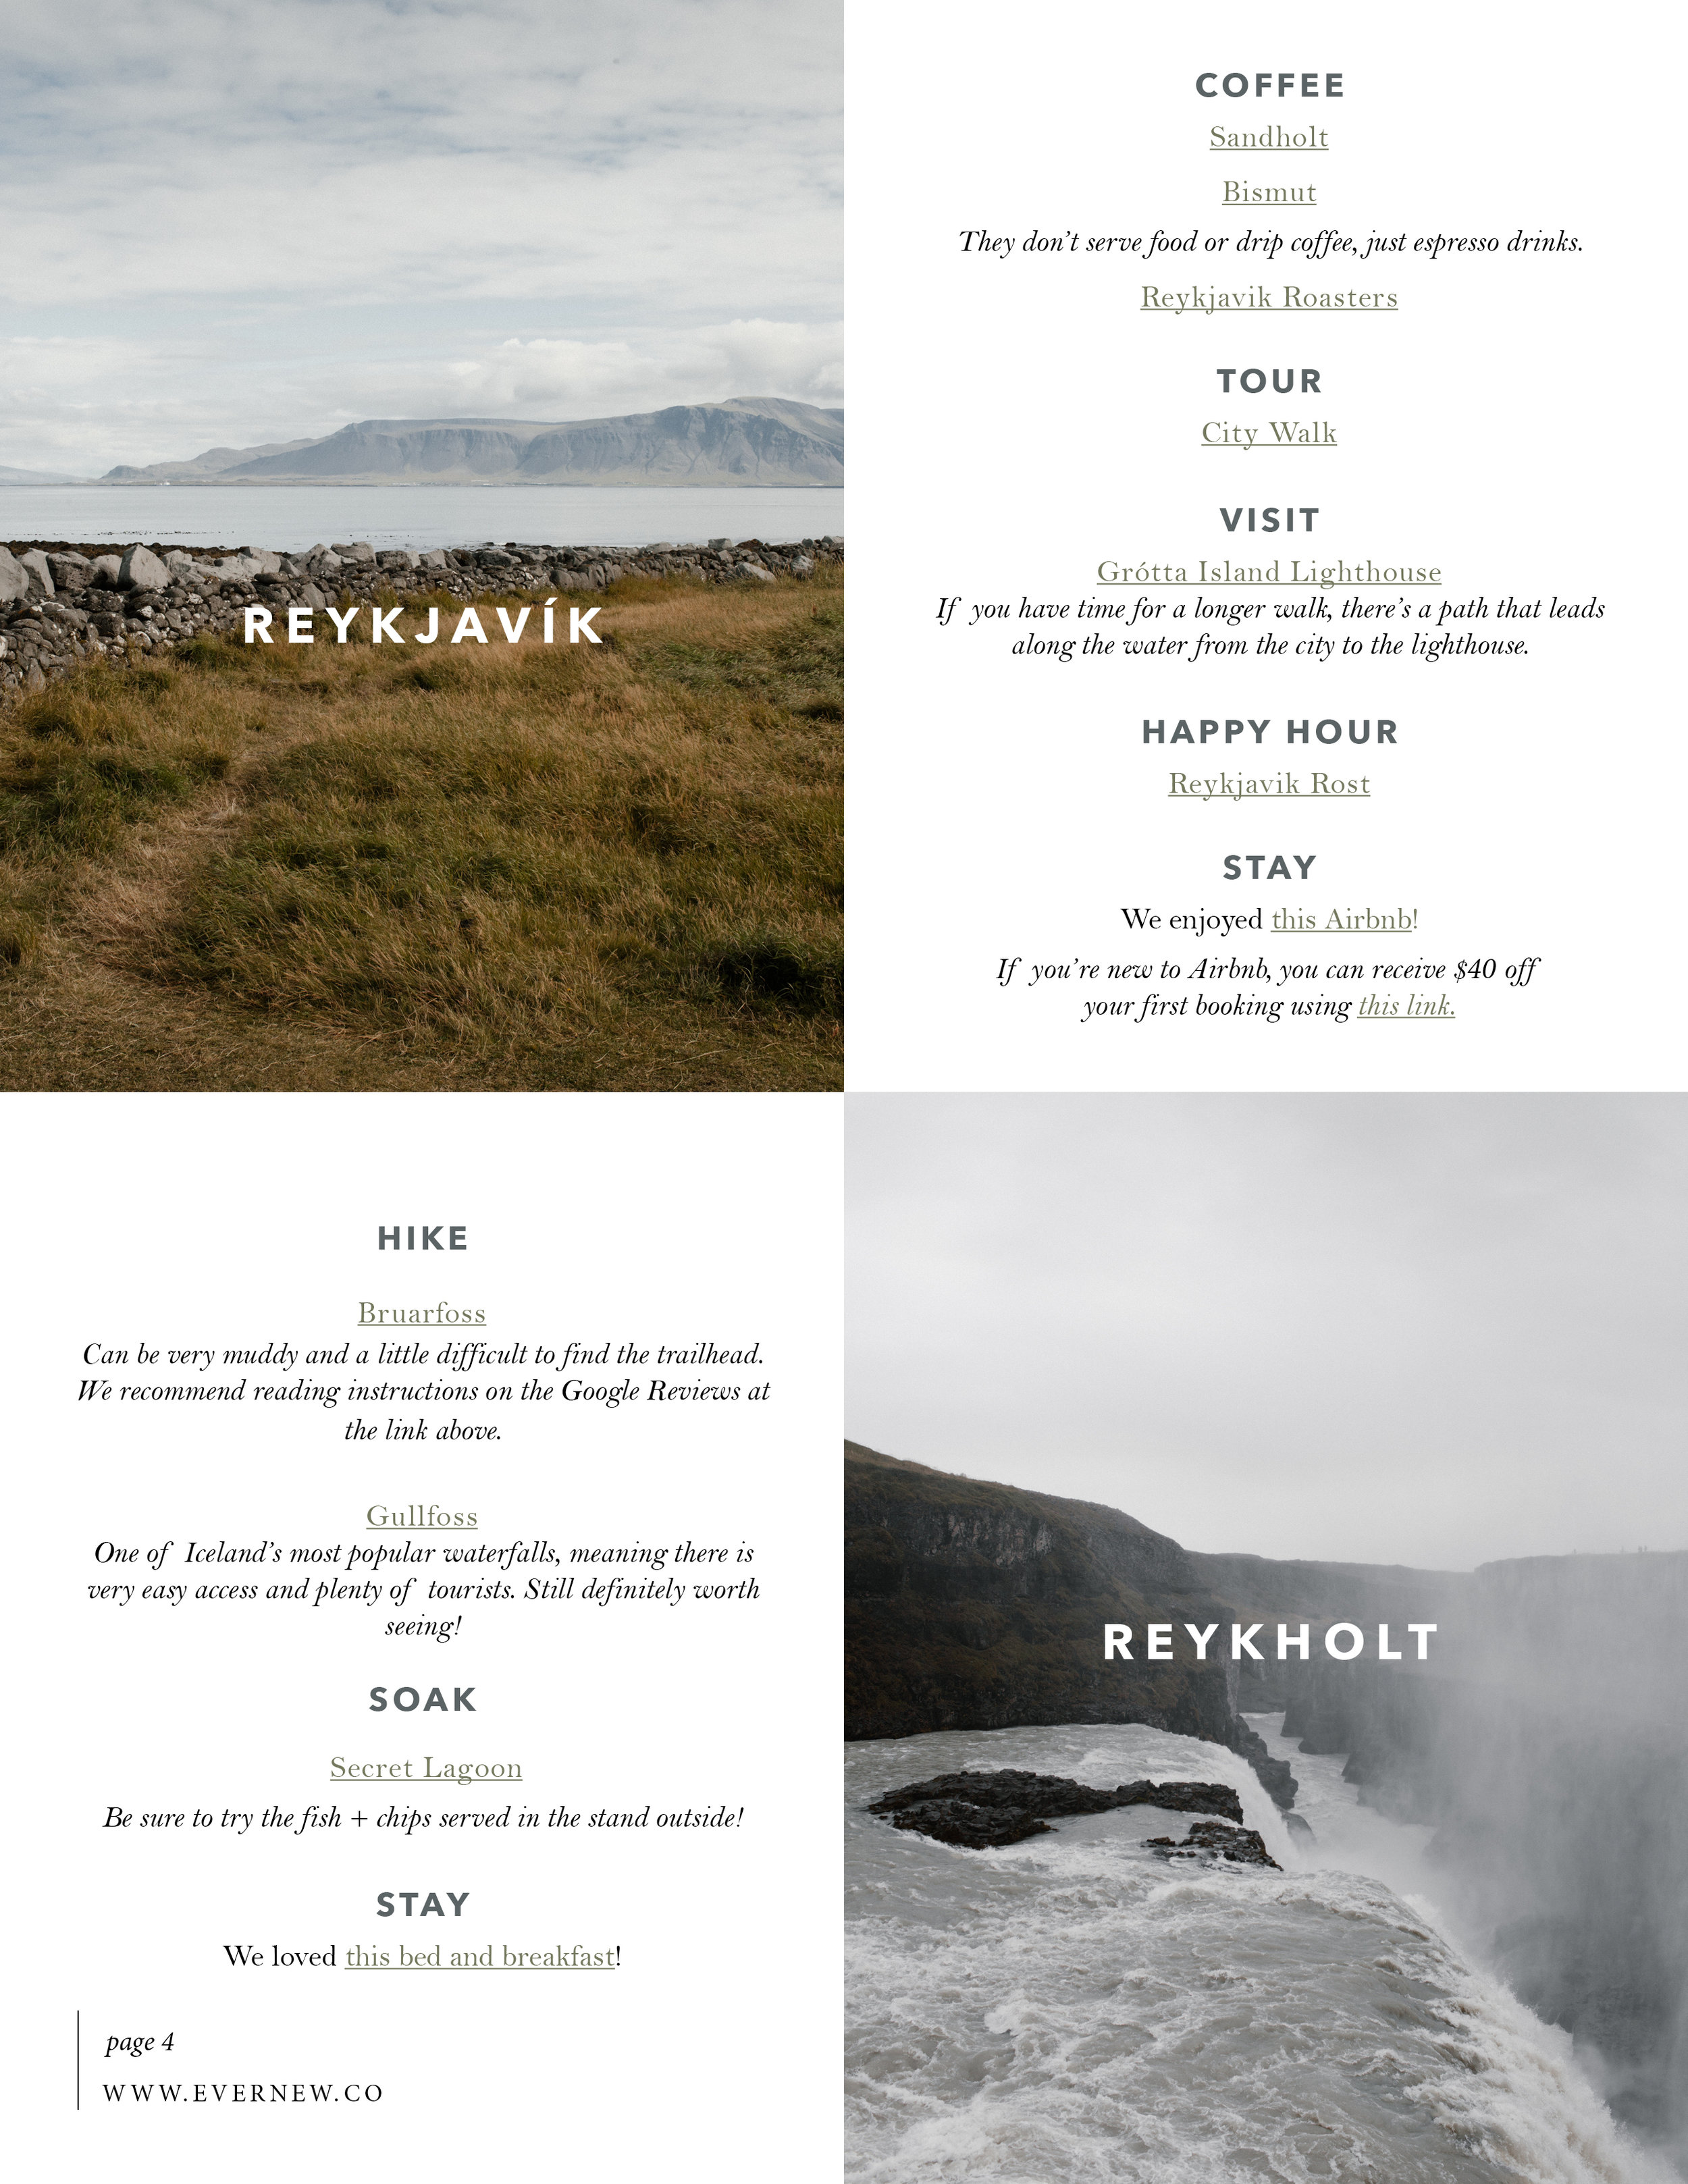 Evernew - Iceland Guide4.jpg